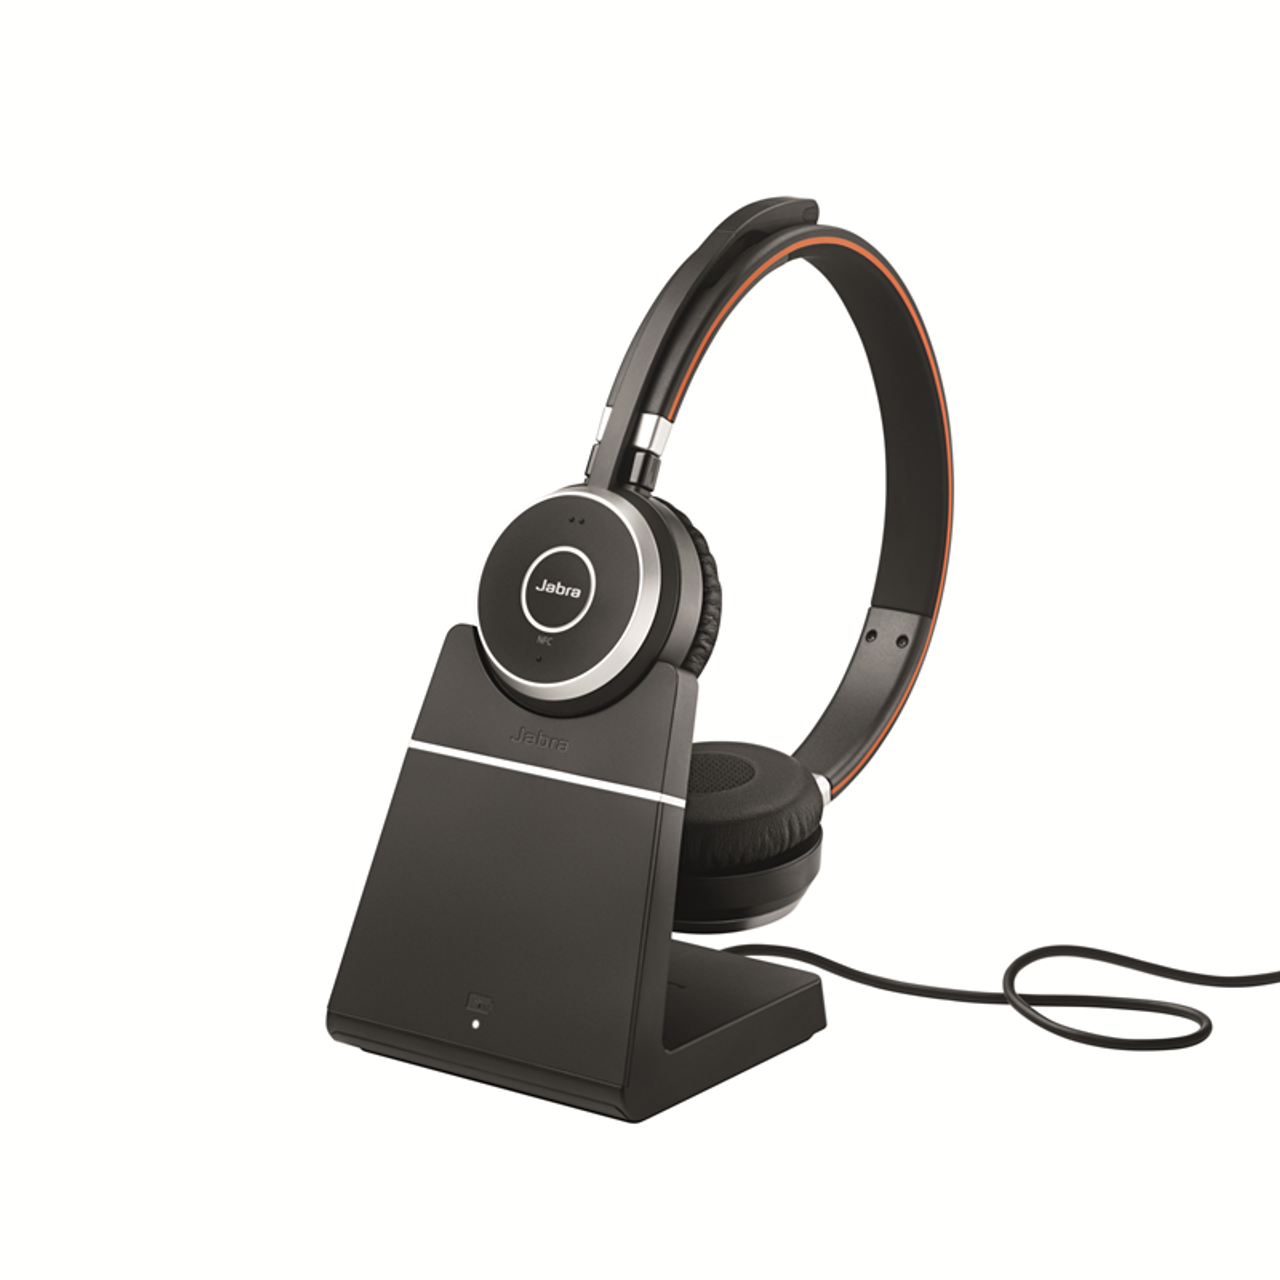 Jabra Evolve 65 Bluetooth Stereo Headset Bundle With Charging Dock Uc Version Bonus Universal Wall Charger Usb Dongle And Charging Stand 6599 823 499